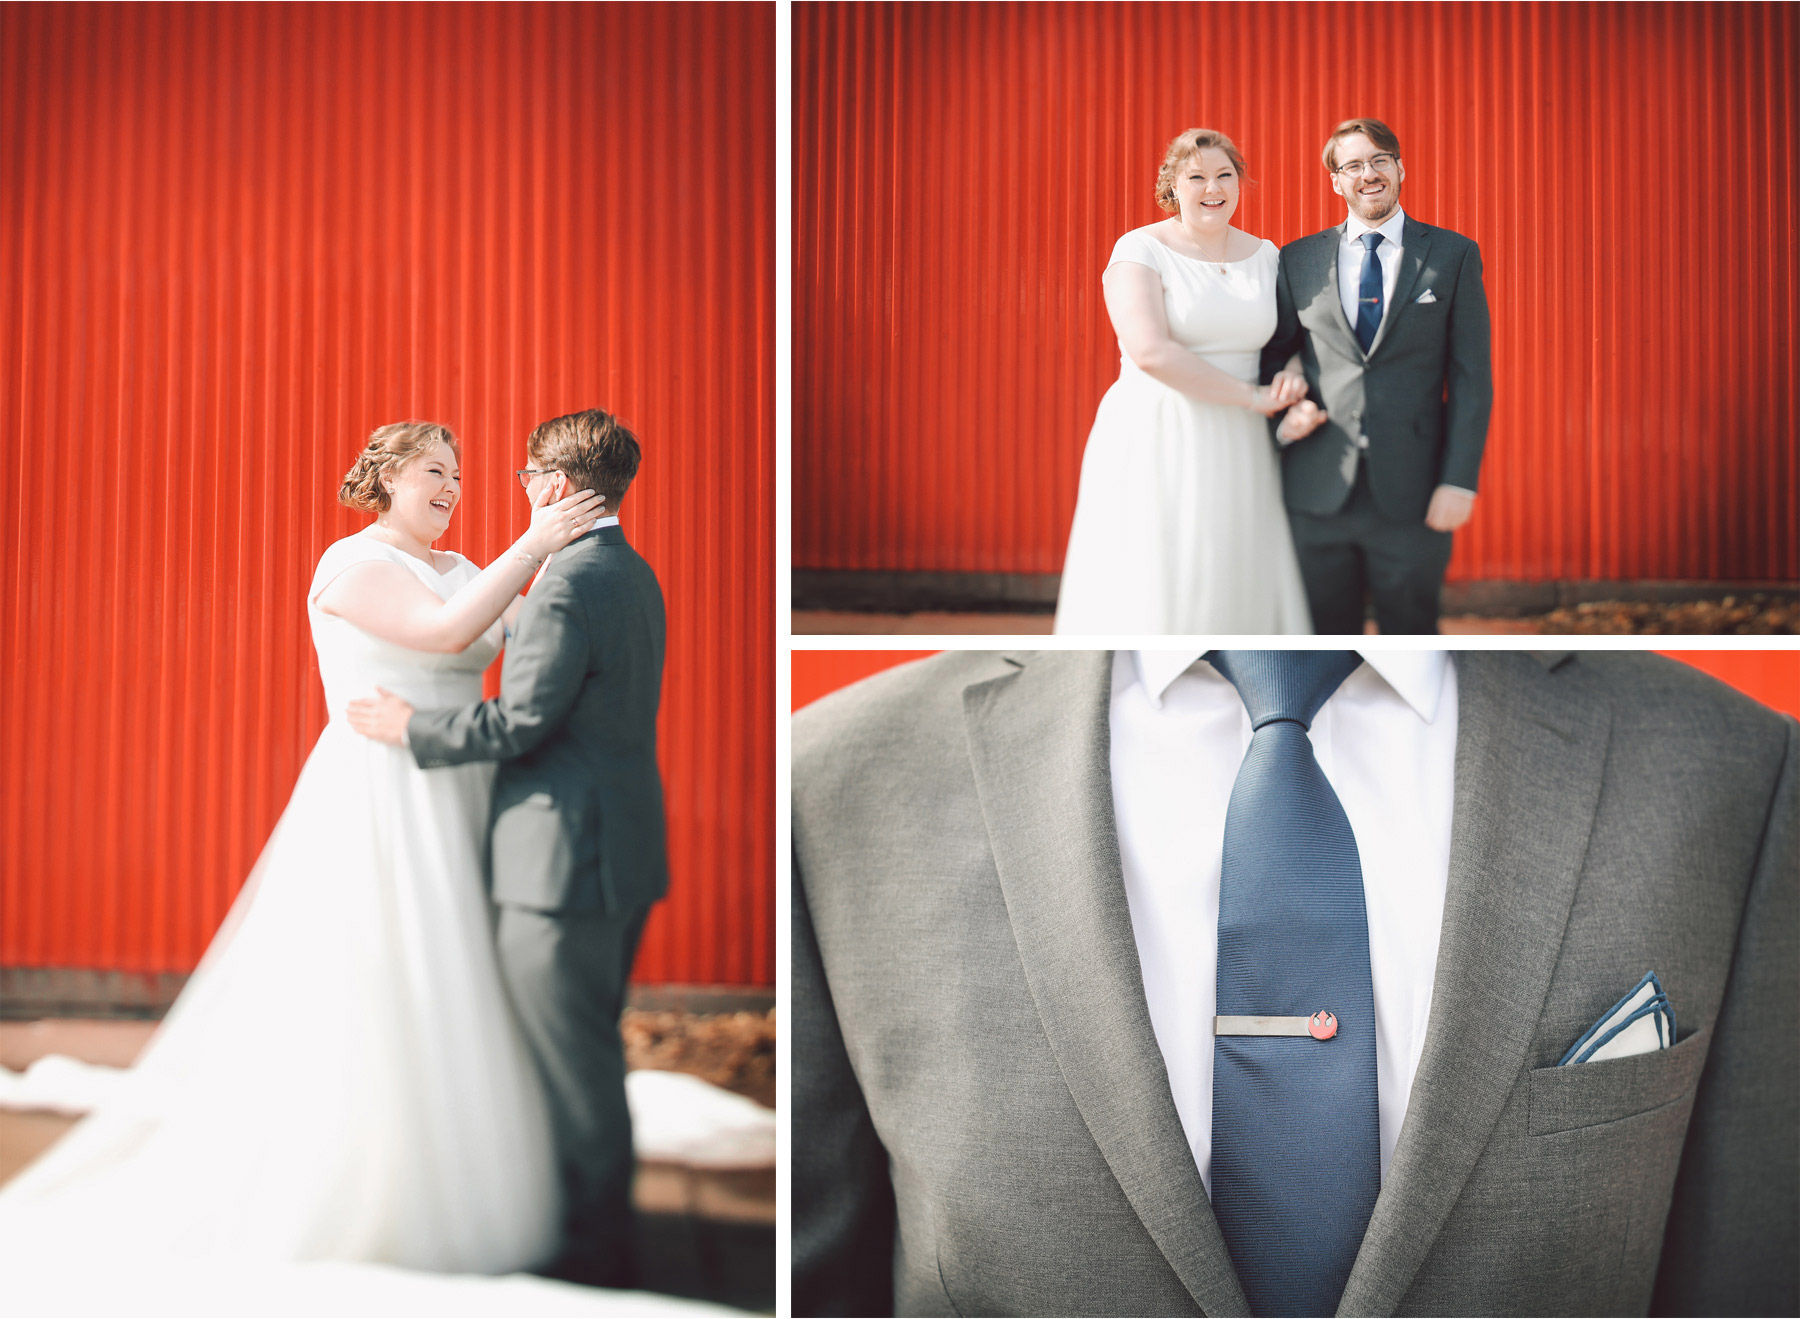 05-Minneapolis-Wedding-Photography-by-Vick-First-Look-Star-Wars-Pin-Libby-and-Nathan.jpg